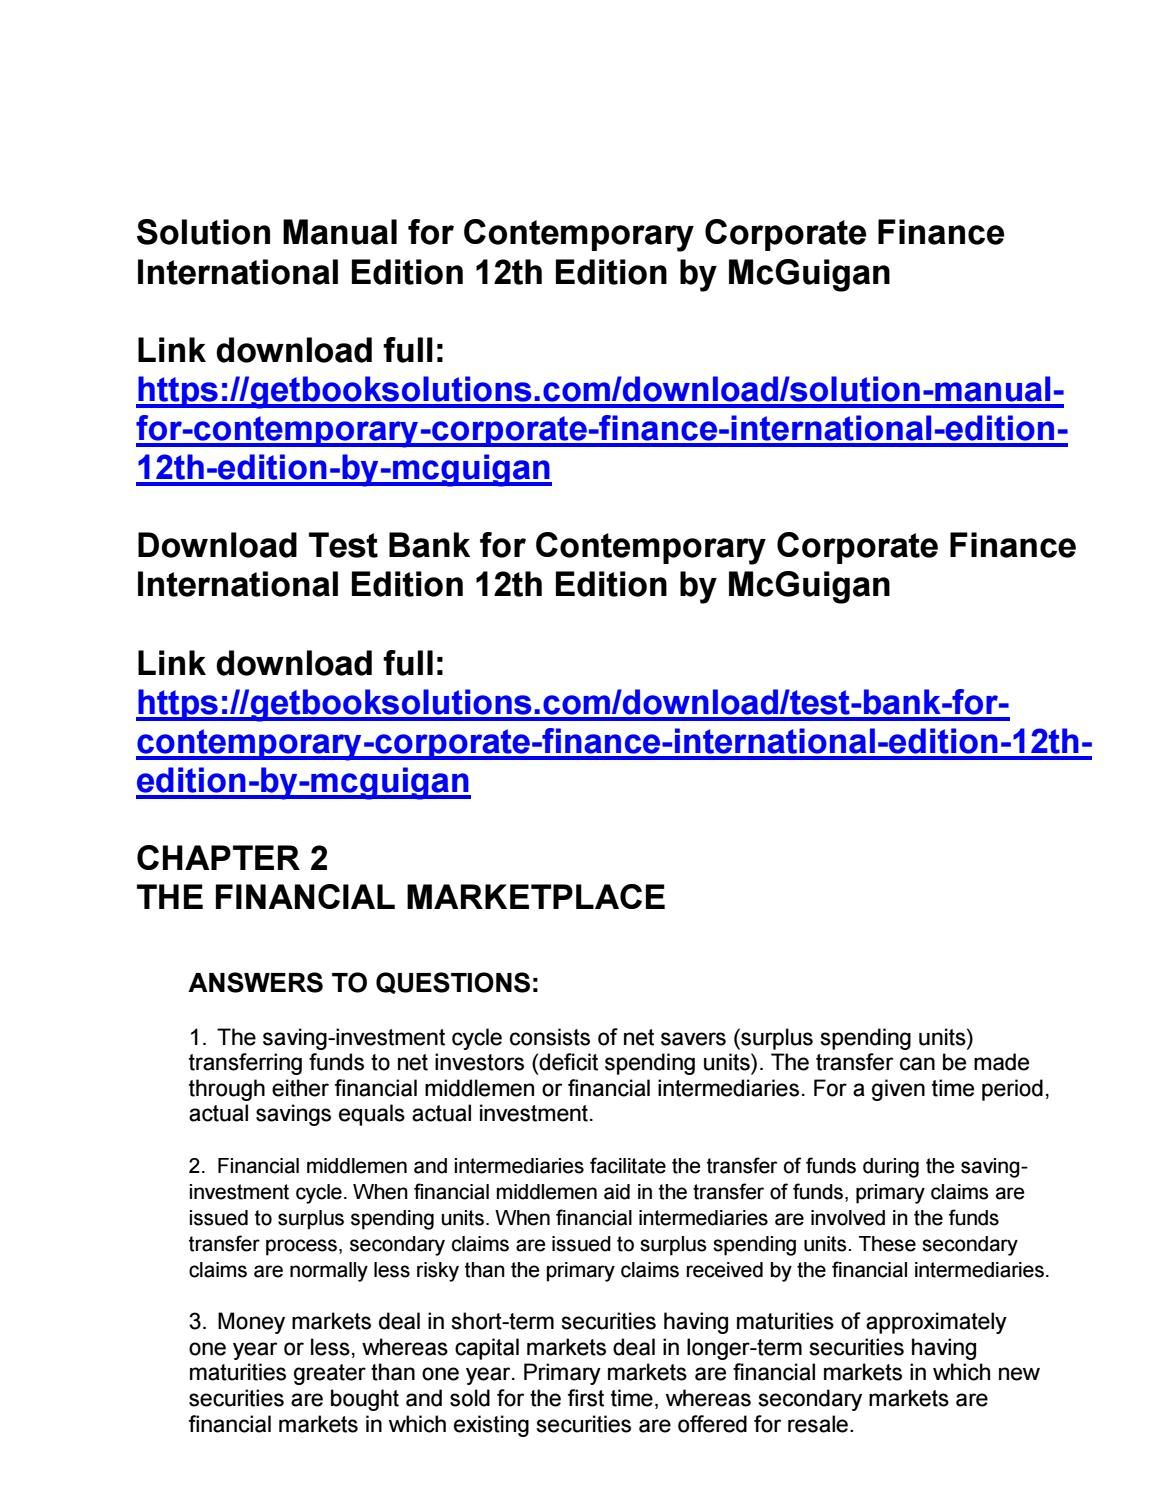 Solution manual for contemporary corporate finance international edition  12th edition by mcguigan   solution manual   Pinterest